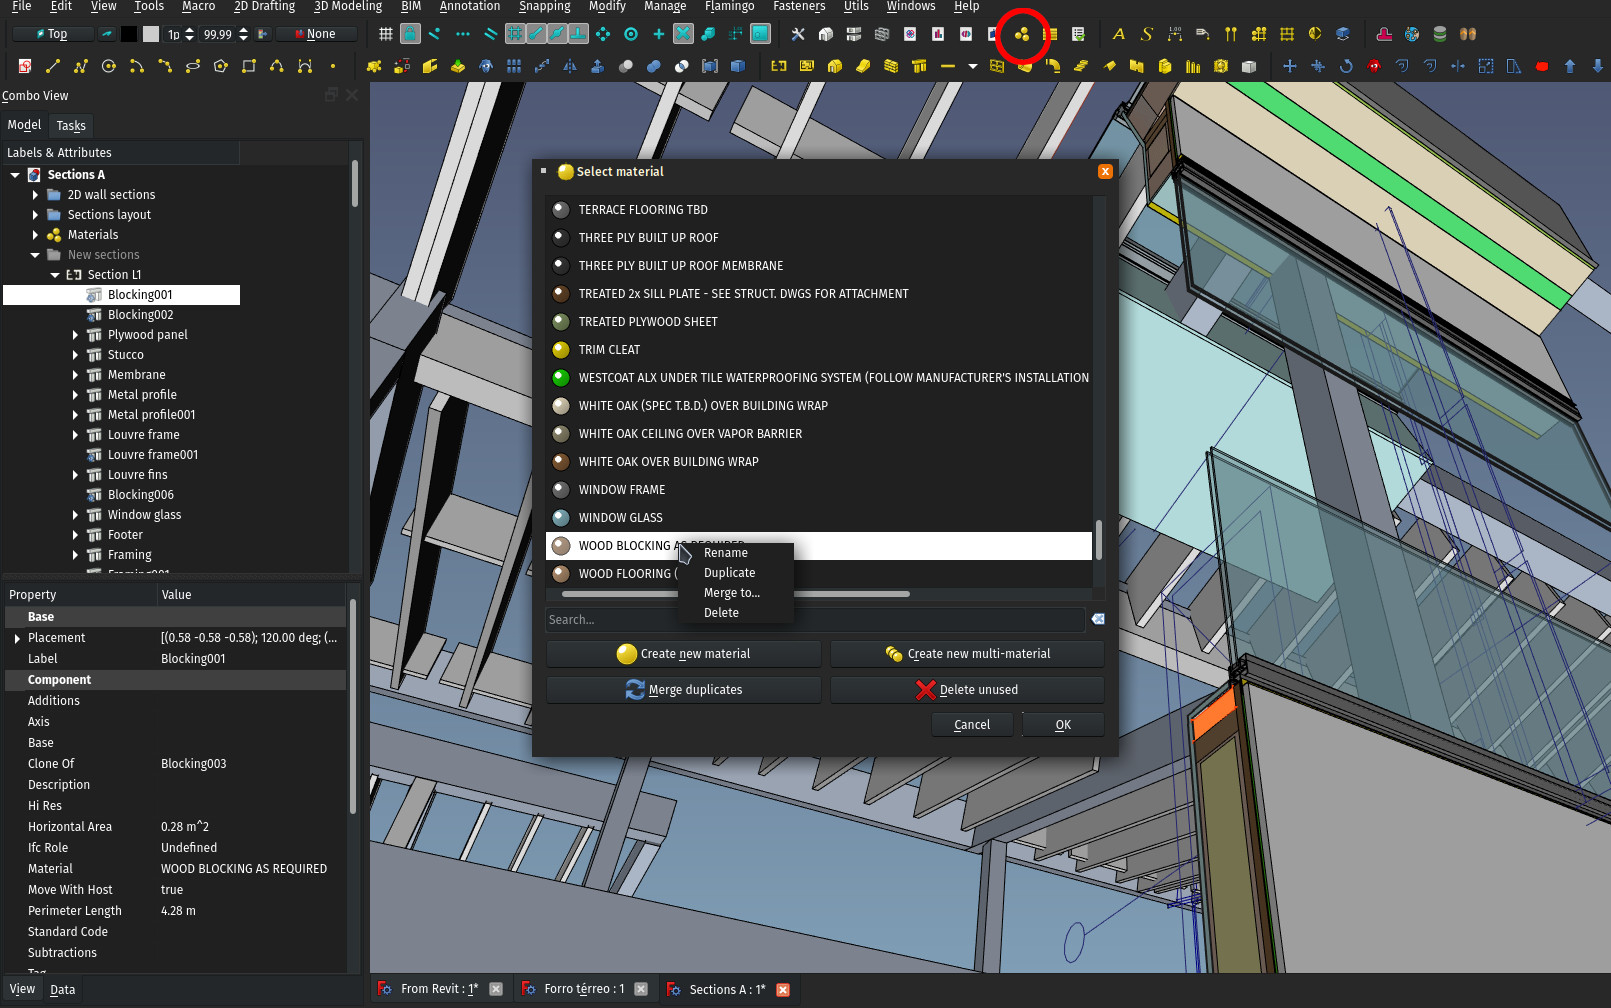 The material editor window